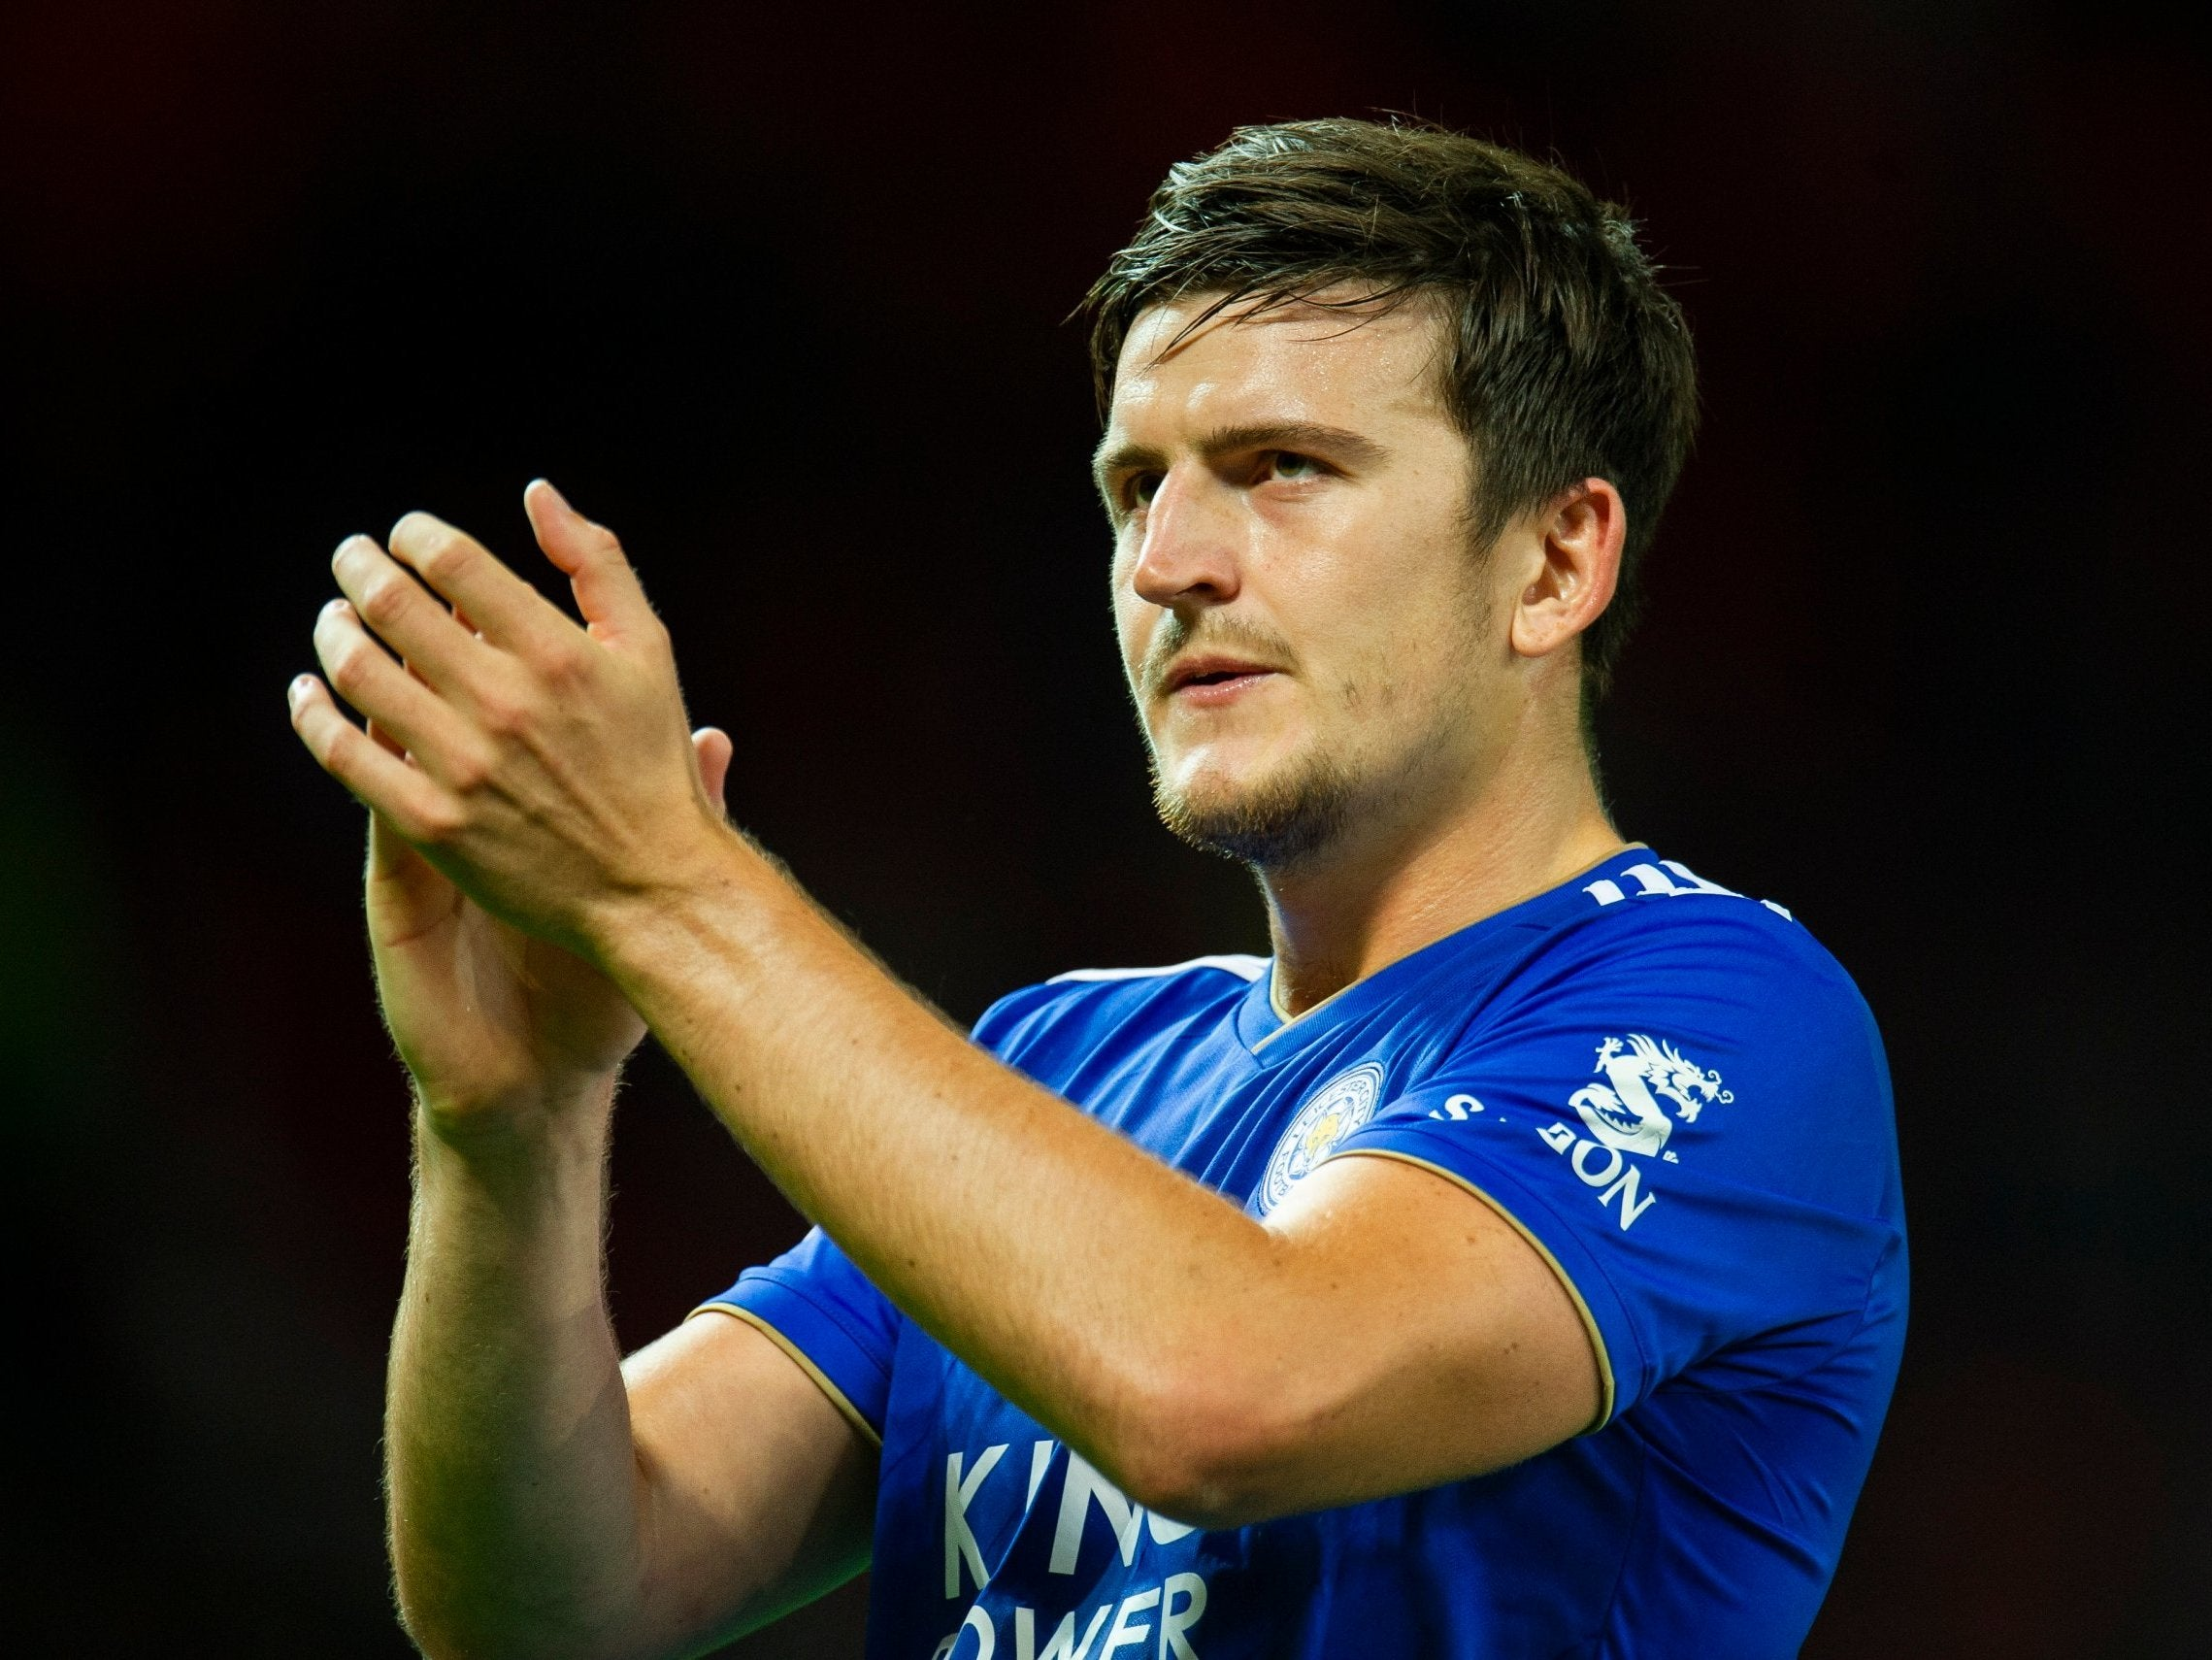 Transfer news, rumours LIVE – Harry Maguire to sign new contract to fend off Manchester United, Paul Pogba update, Arsenal have wage issues, latest gossip